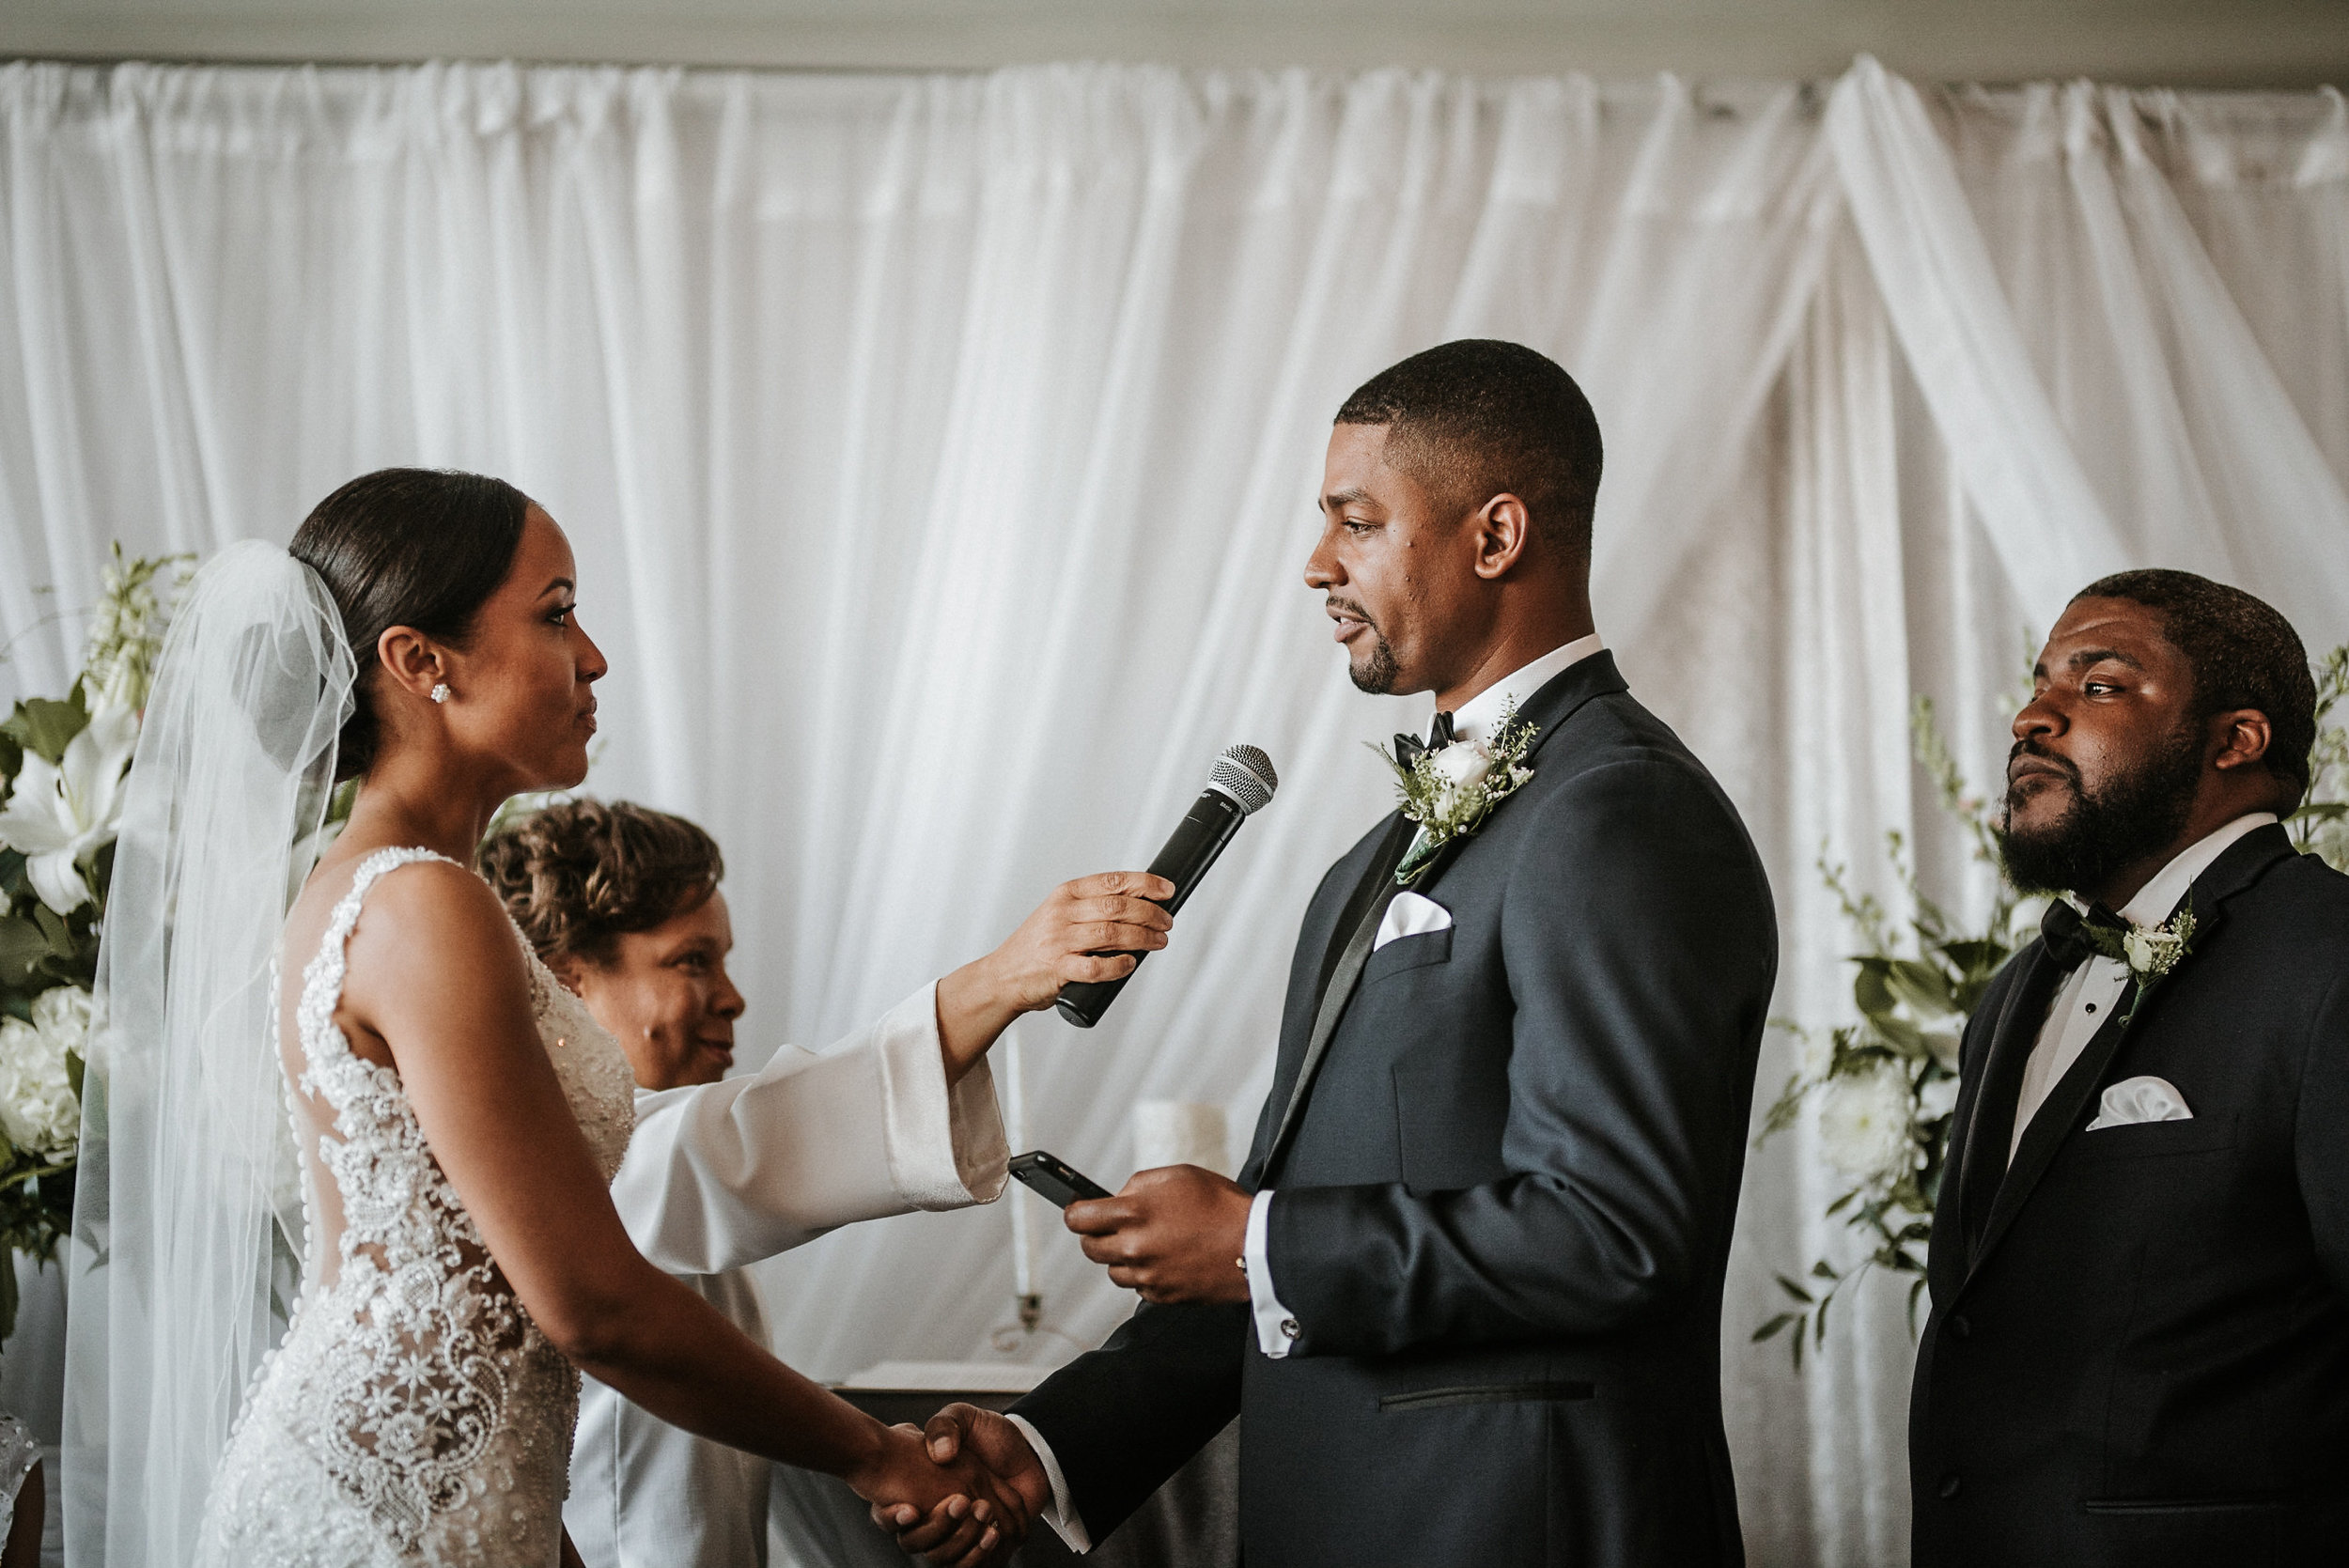 Groom reciting vows during ceremony